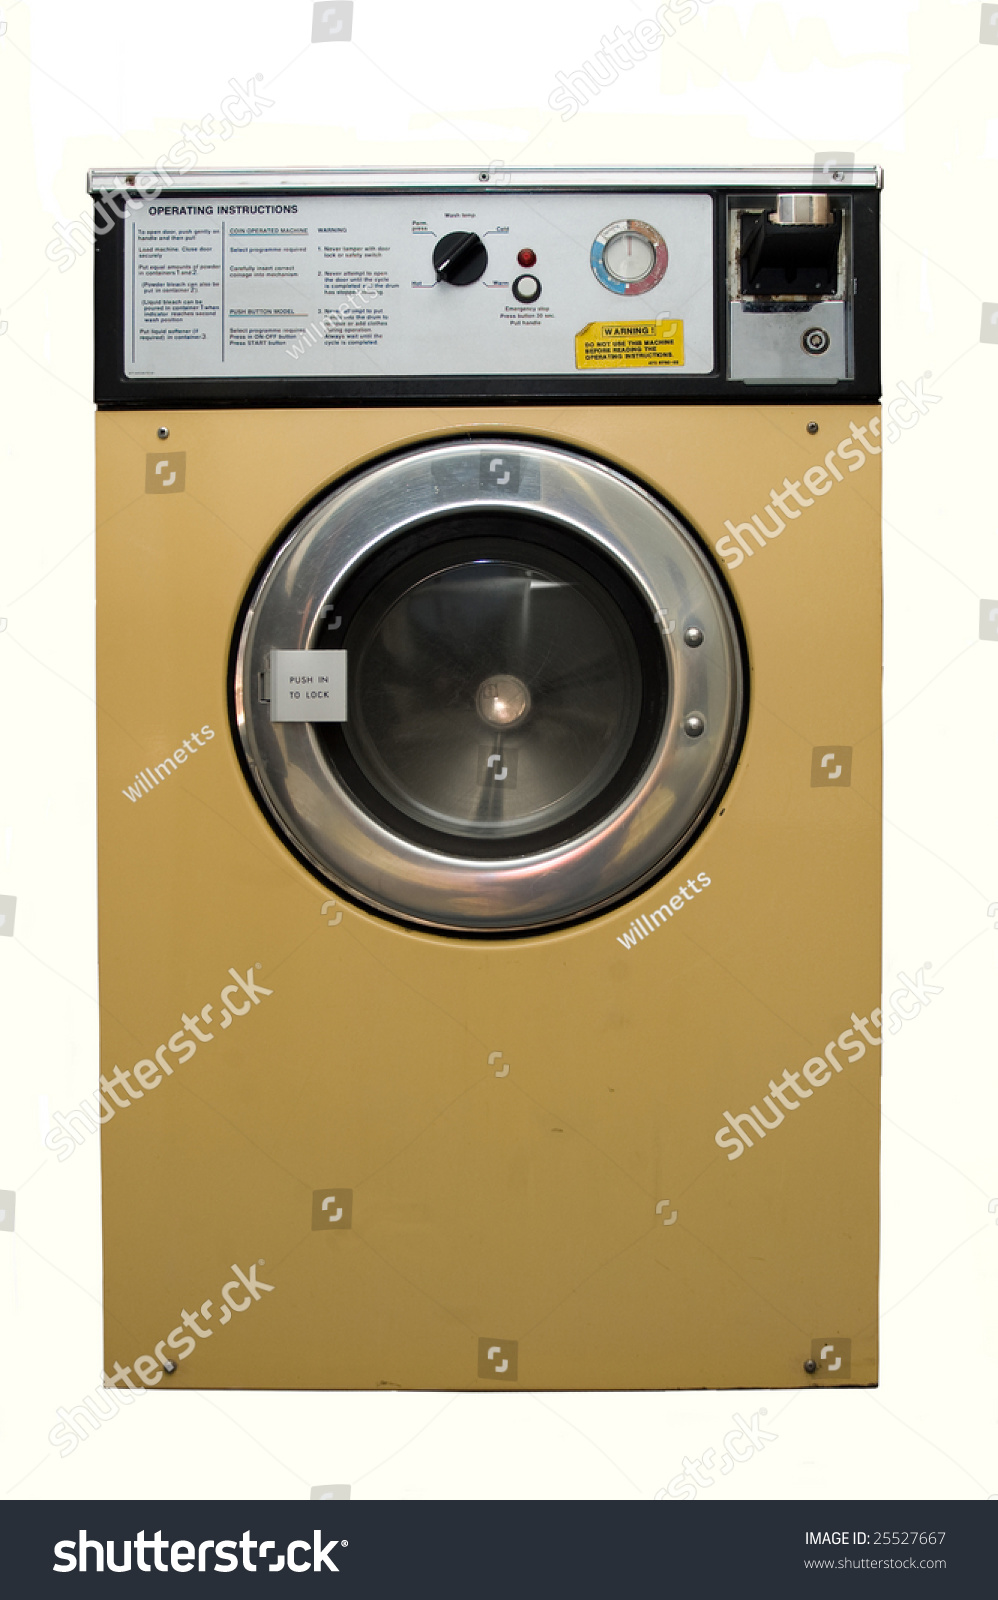 Dirty Well Used Coin Operated Launderette Stock Photo (Edit Now